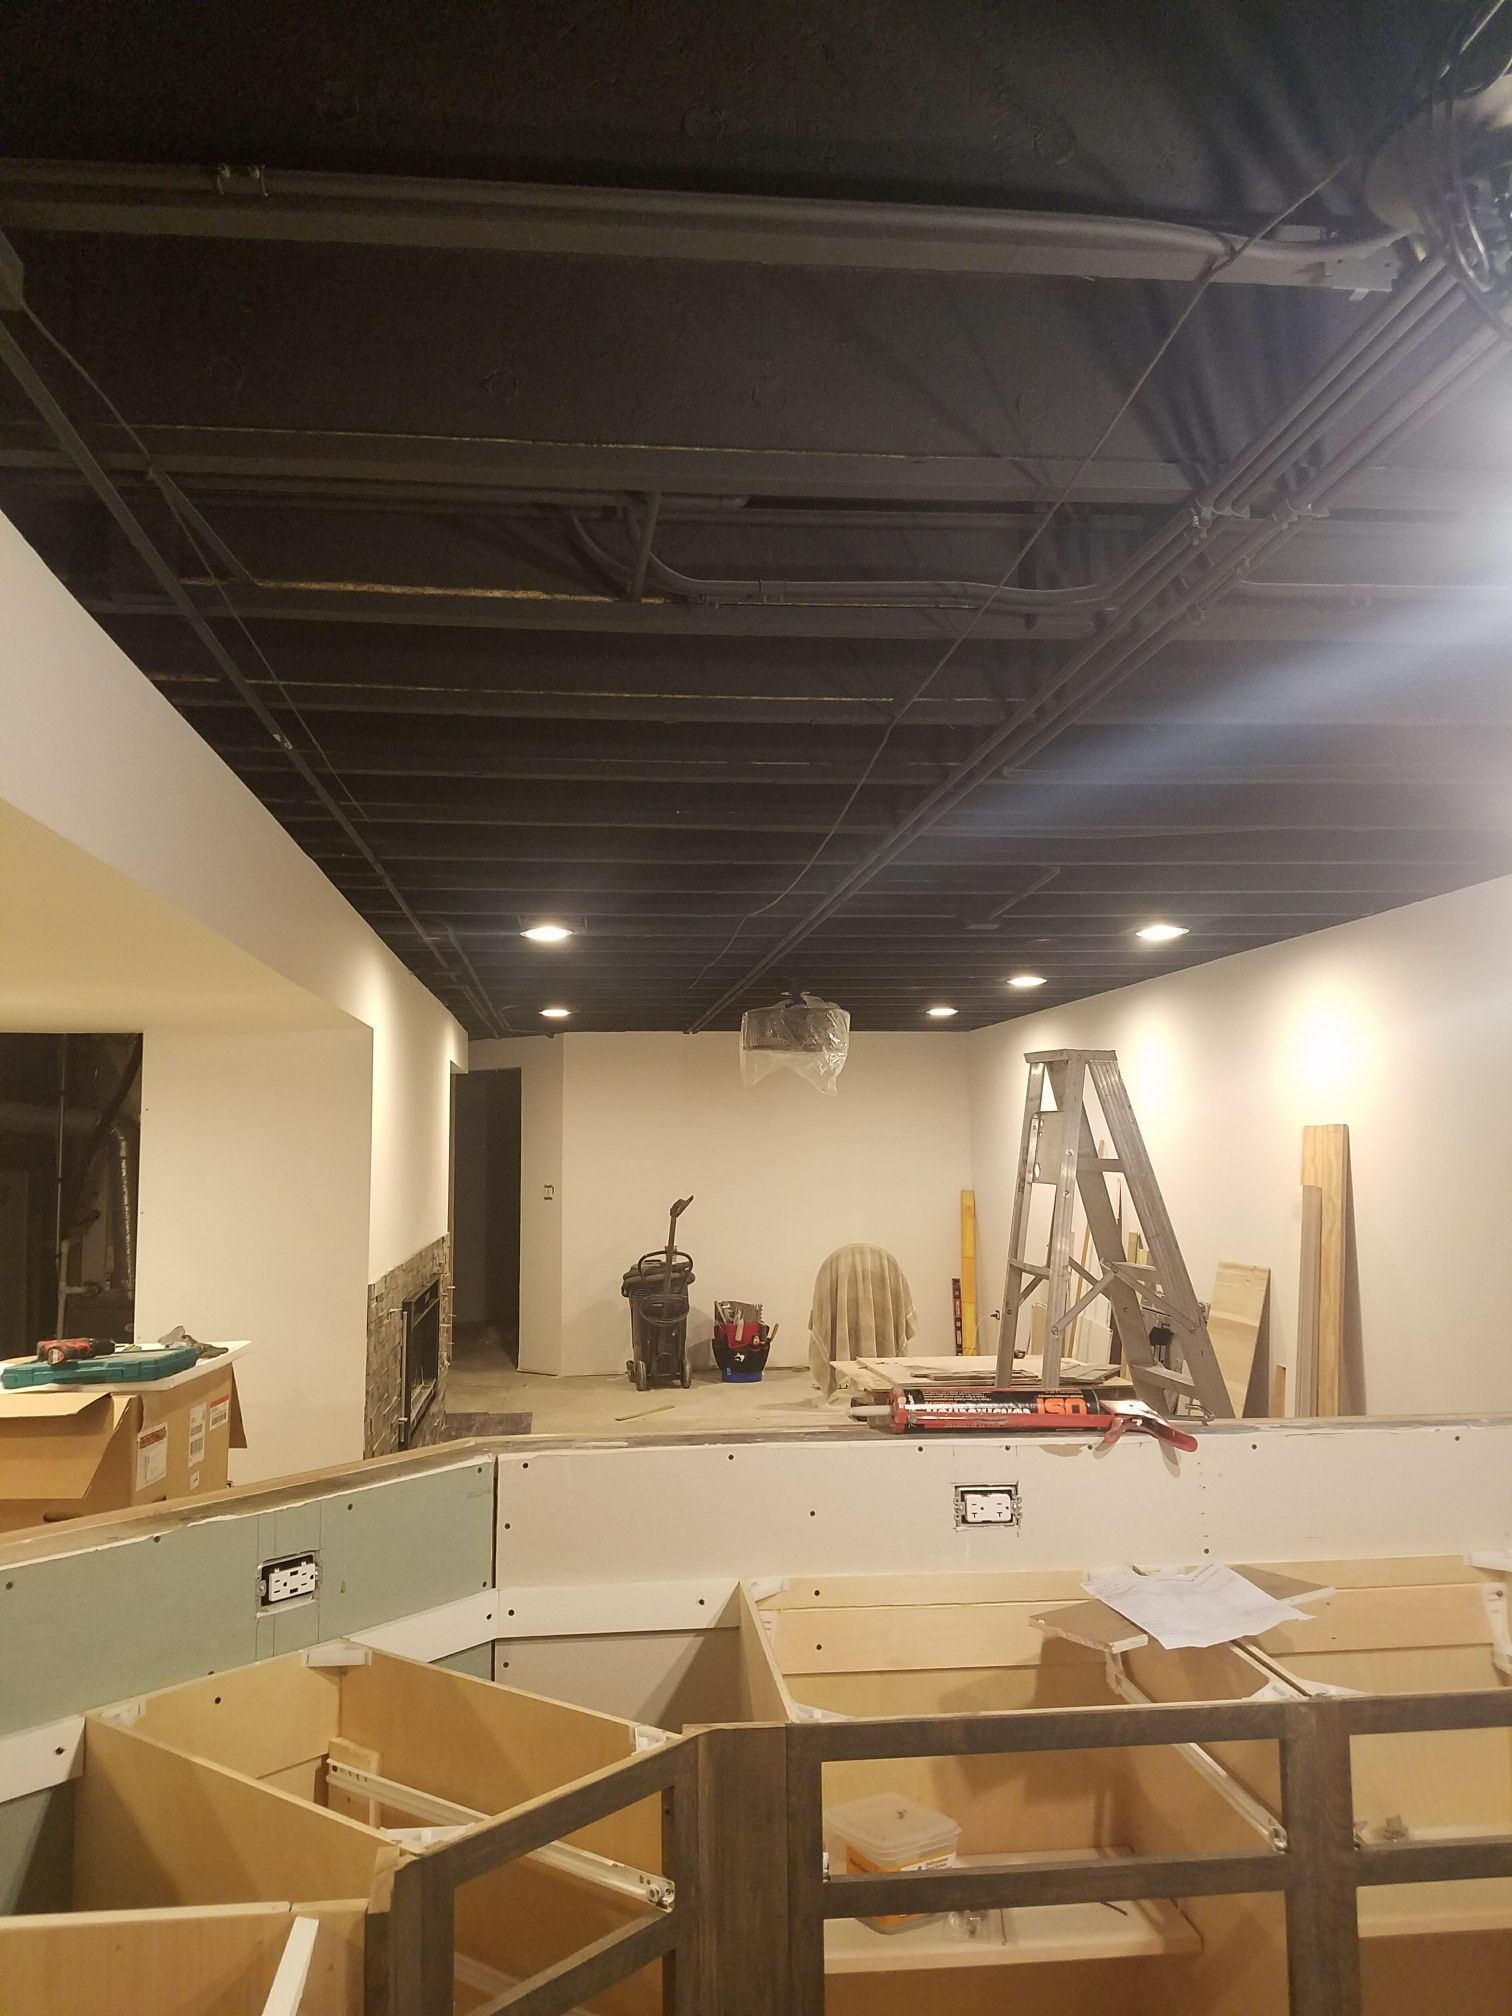 Basement Ceiling Painted Black After Drywall Basement Ceiling Ideas Cheap Ceiling Tiles Basement